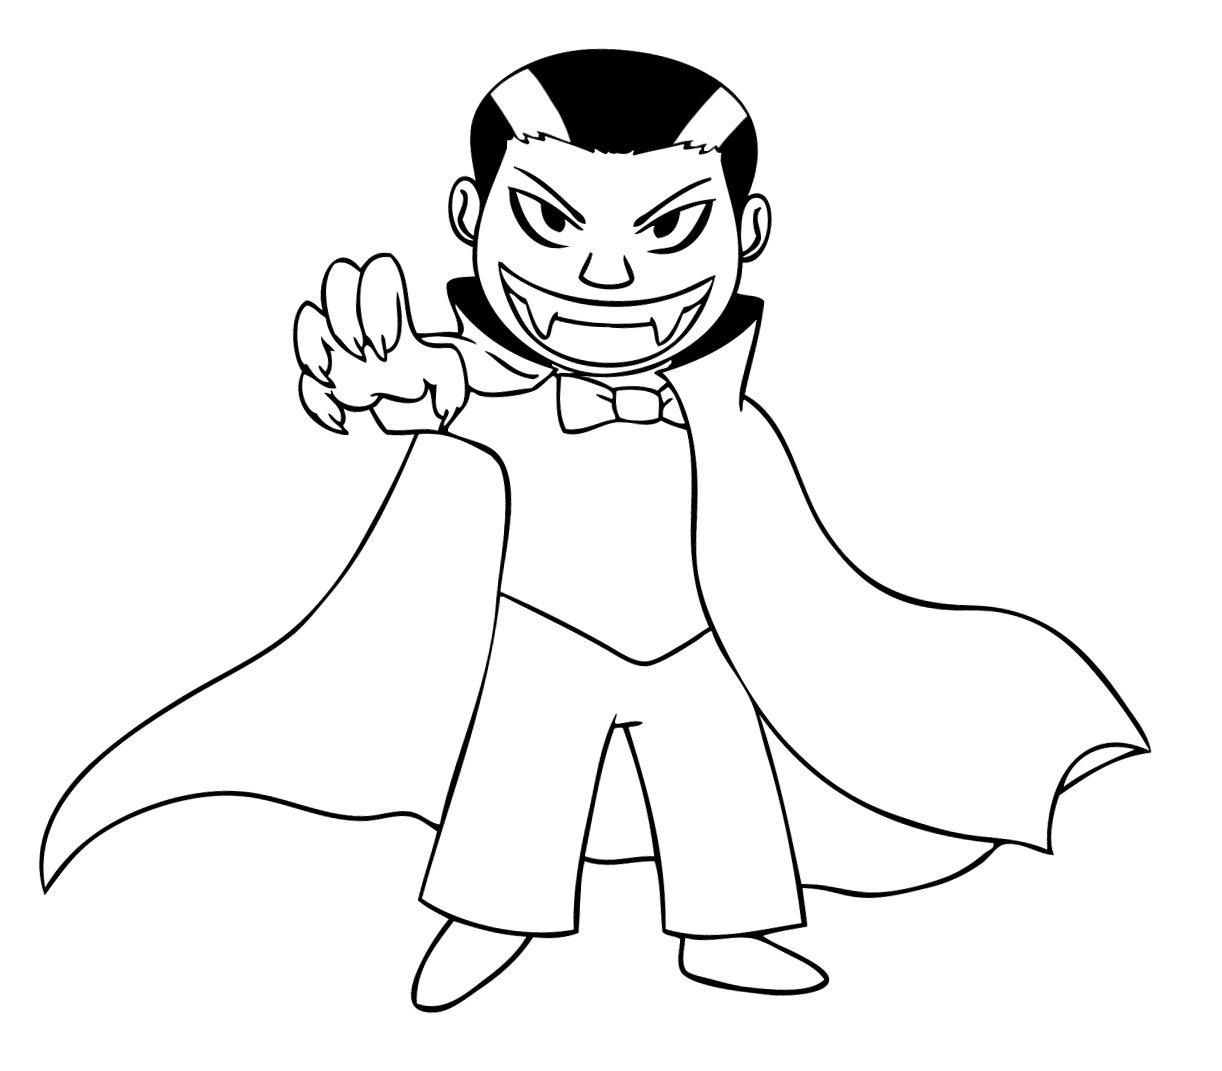 Free Printable Vampire Coloring Pages For Kids With With Images